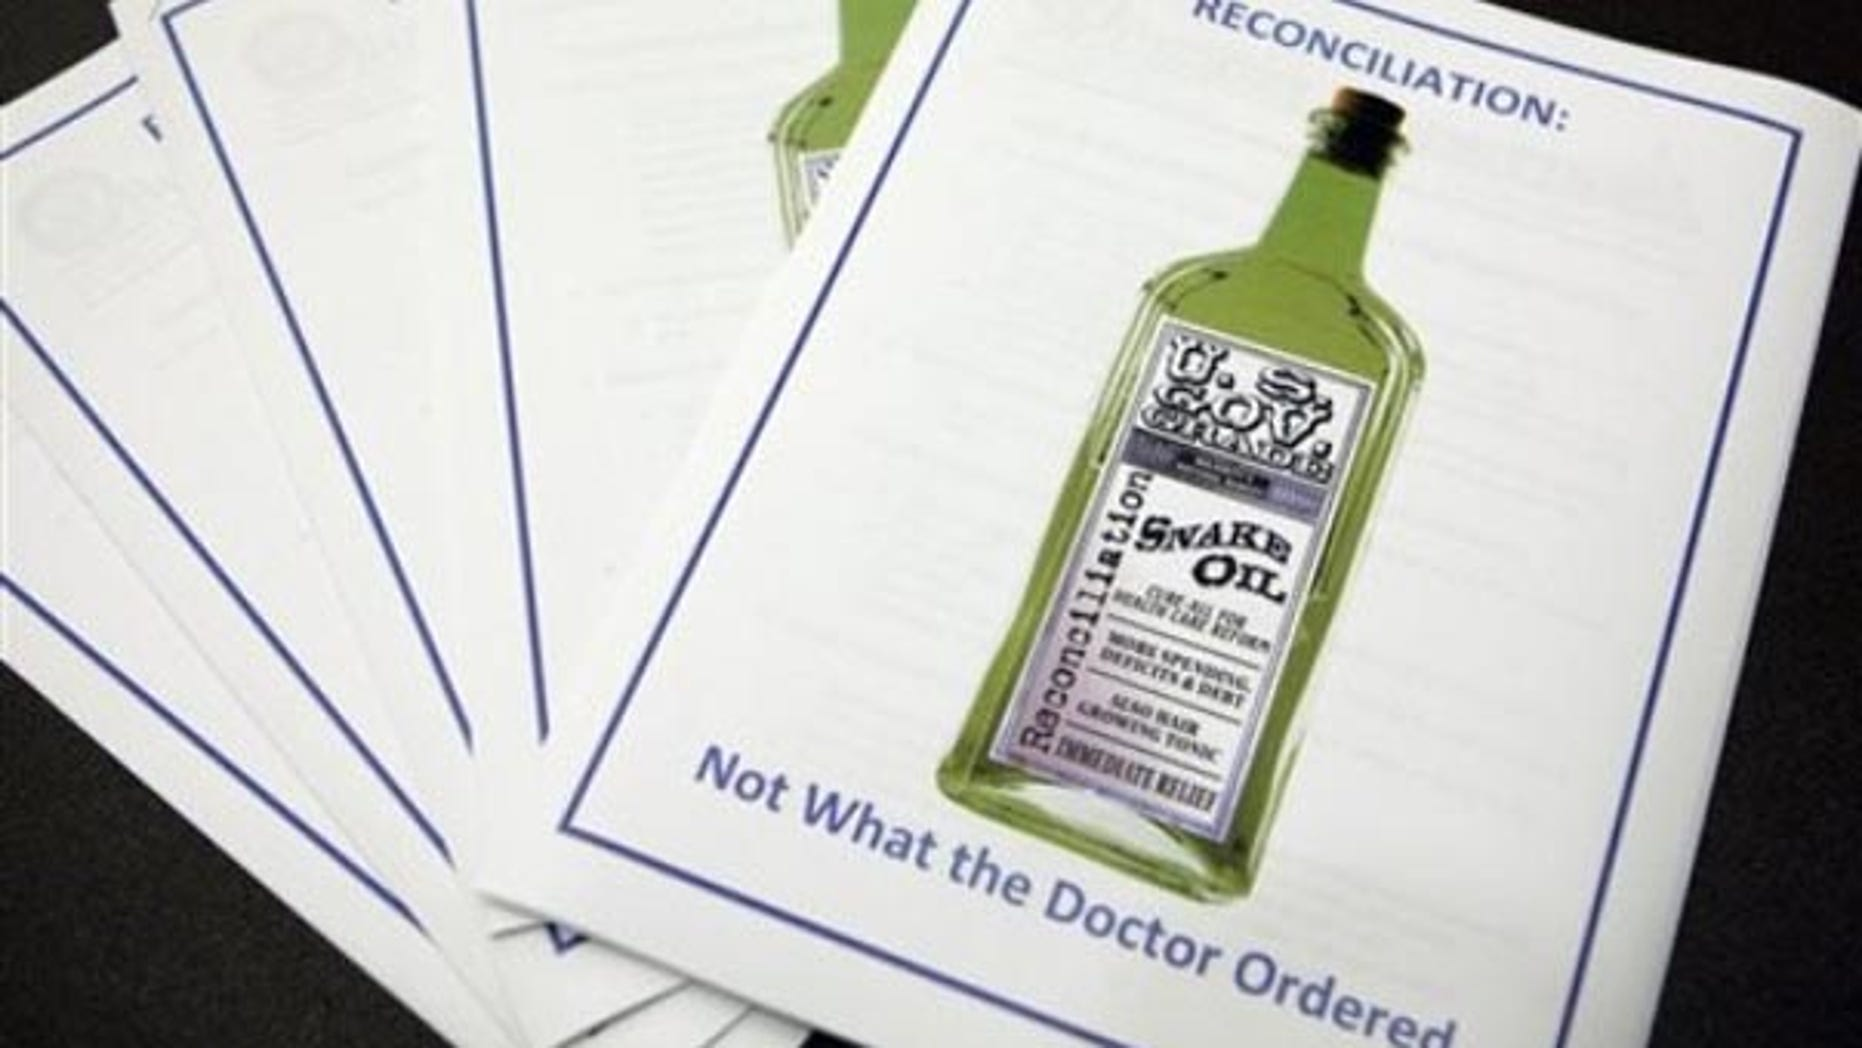 These are information packets as seen on Capitol Hill, Tuesday, Sept. 29, 2009, made available during a Congressional Health Care Caucus discussion on health care reform and budget reconciliation. (AP).